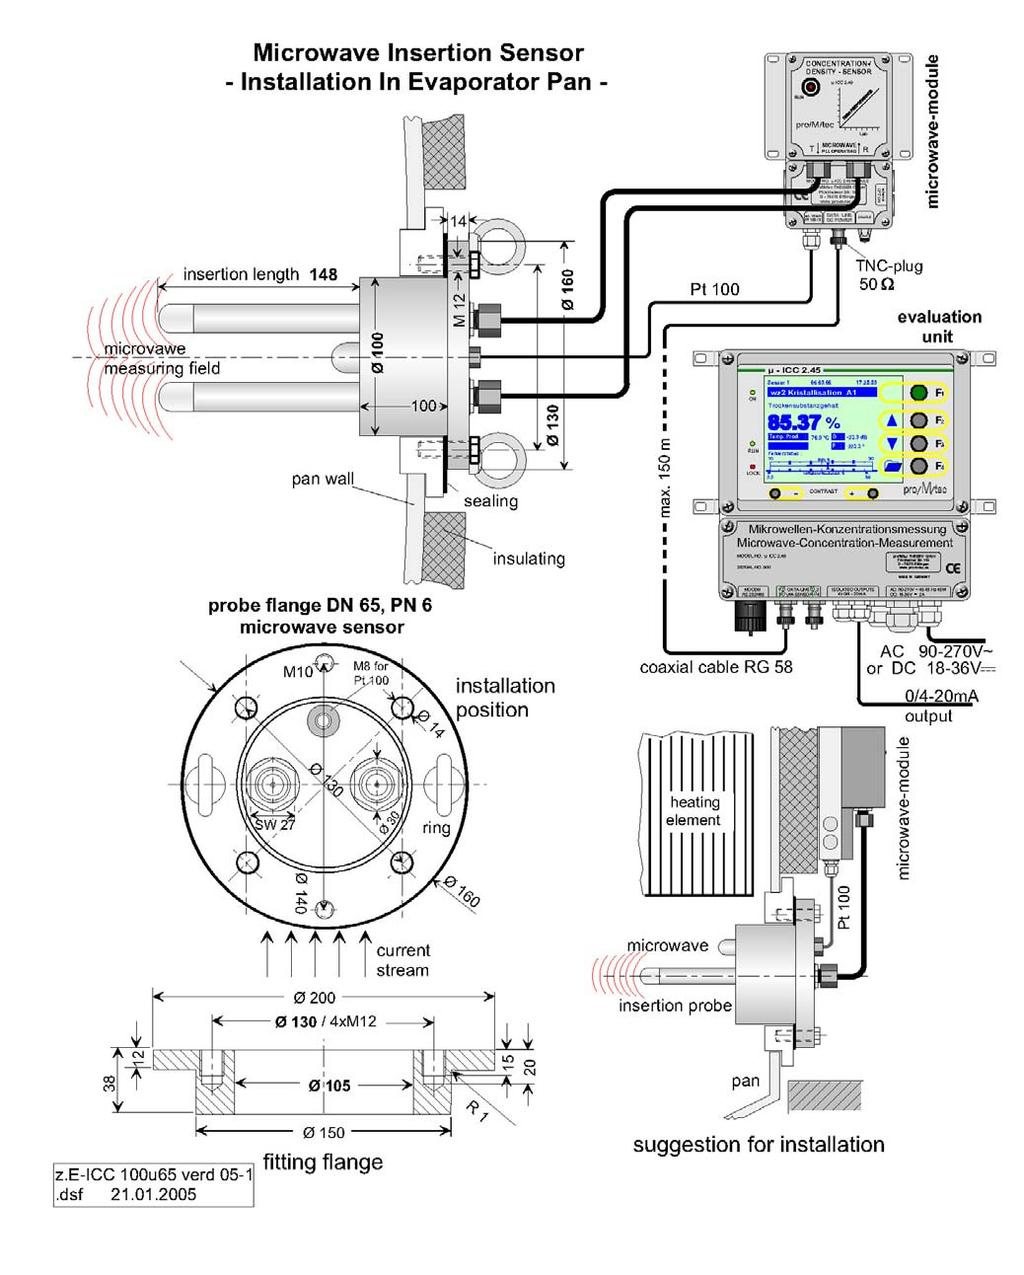 Microwave Concentration Measurement Icc 245 Standard Manual Data Module Wiring Diagram Dimensional Drawings 14